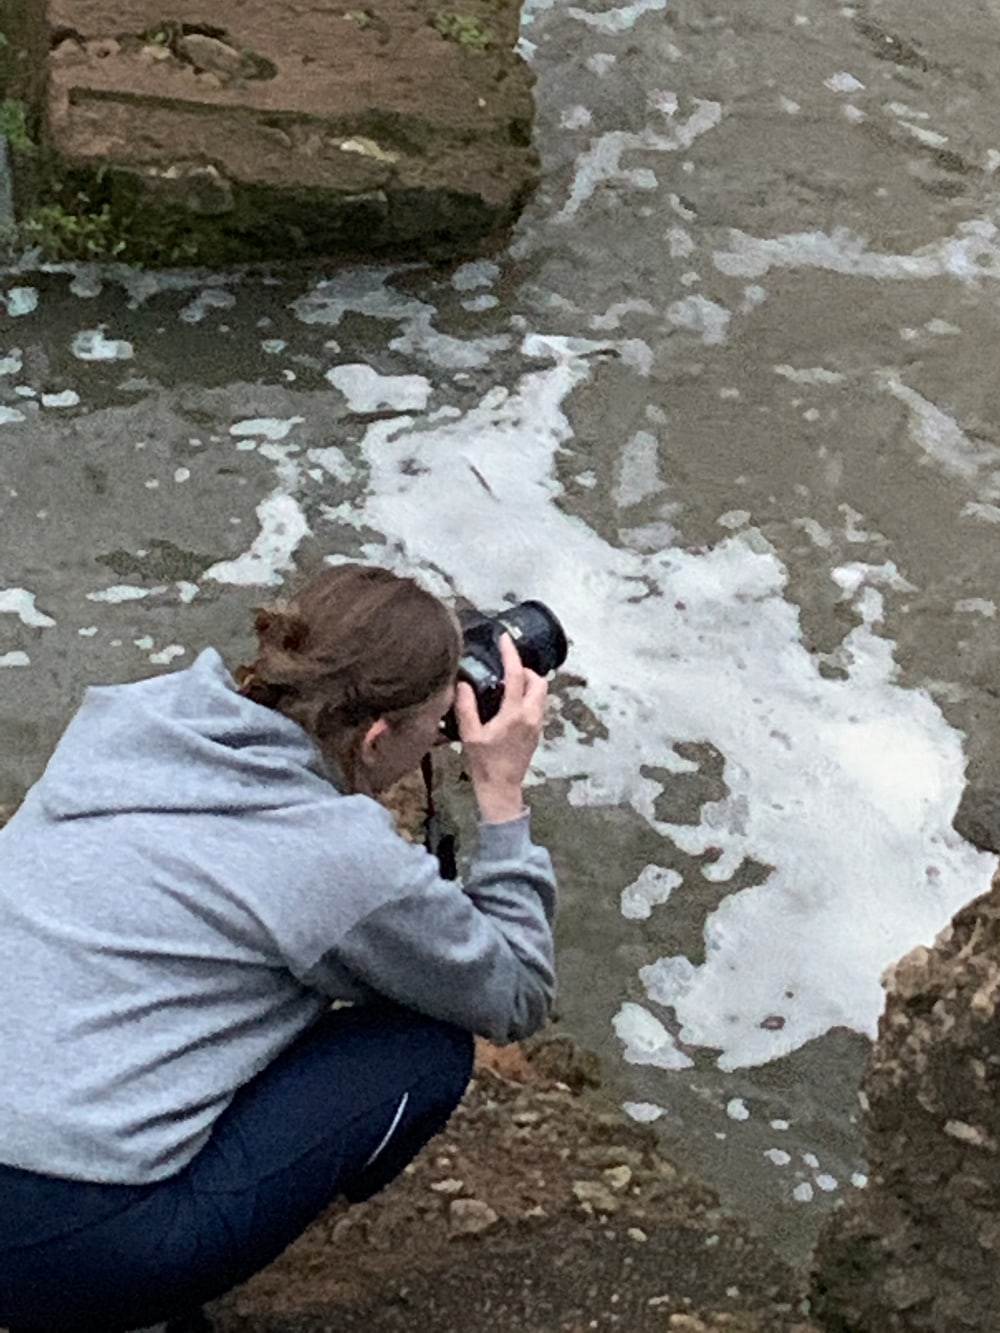 A photo of me taking photos at Starr's Mill